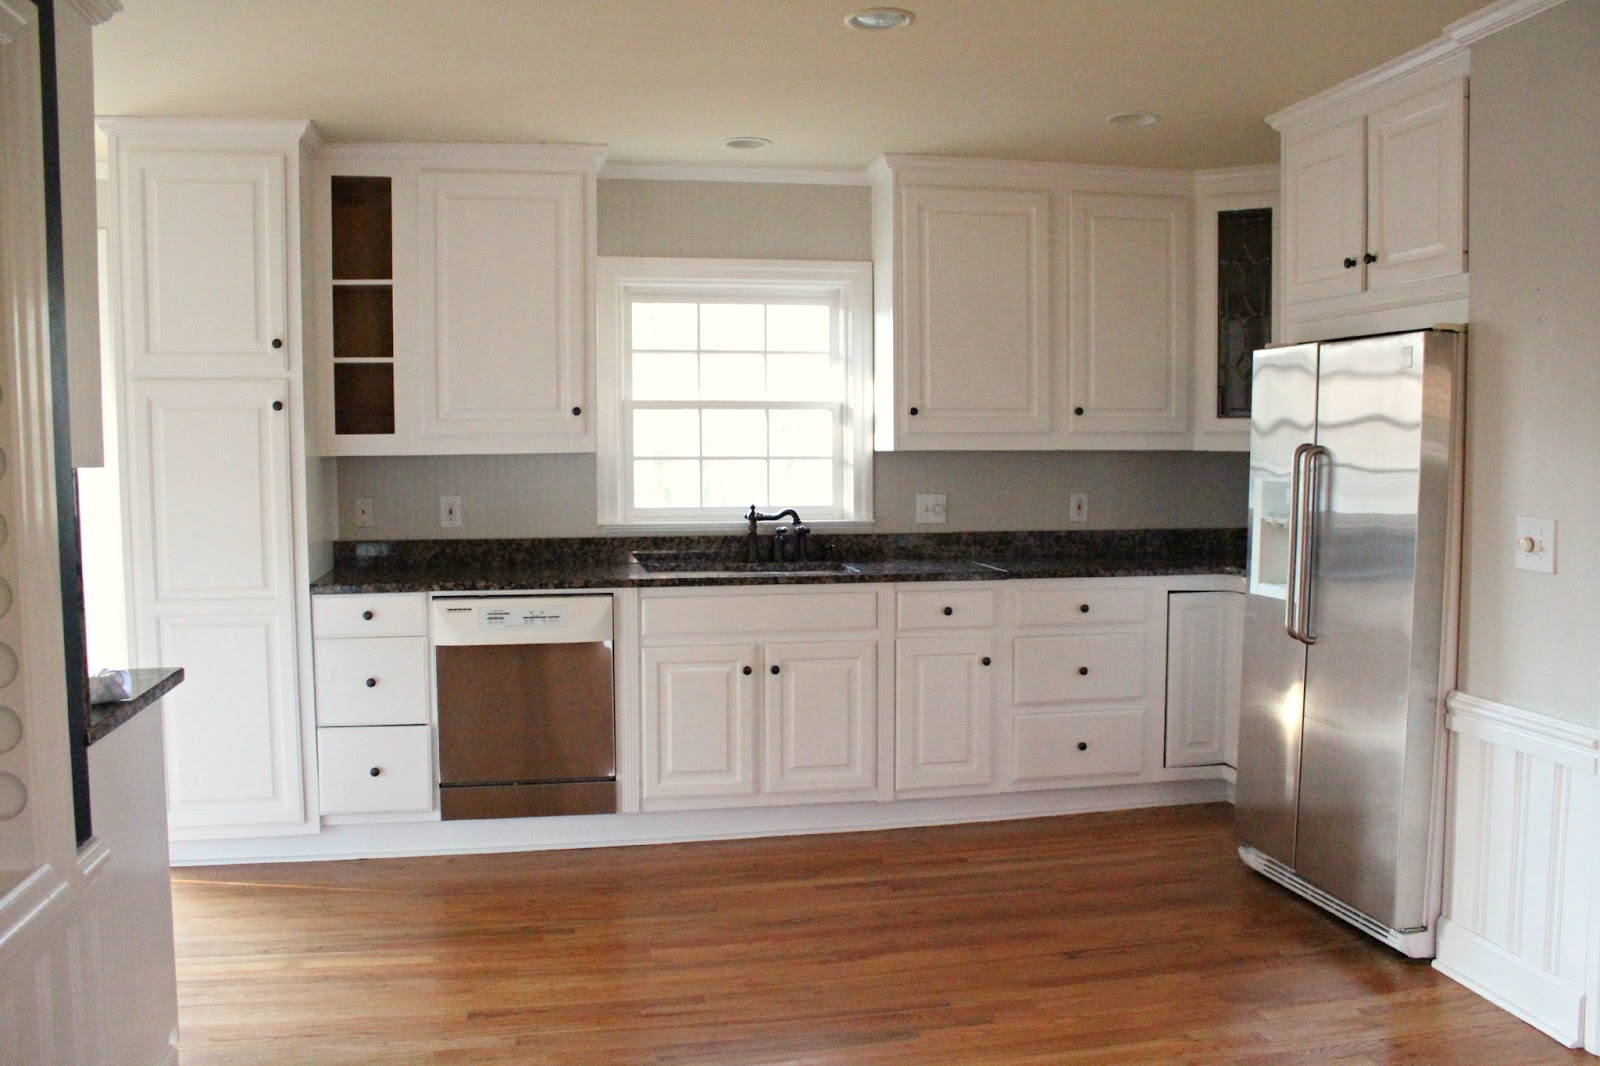 Fancy Empty Kitchen That Will Wake Up Your Creativity